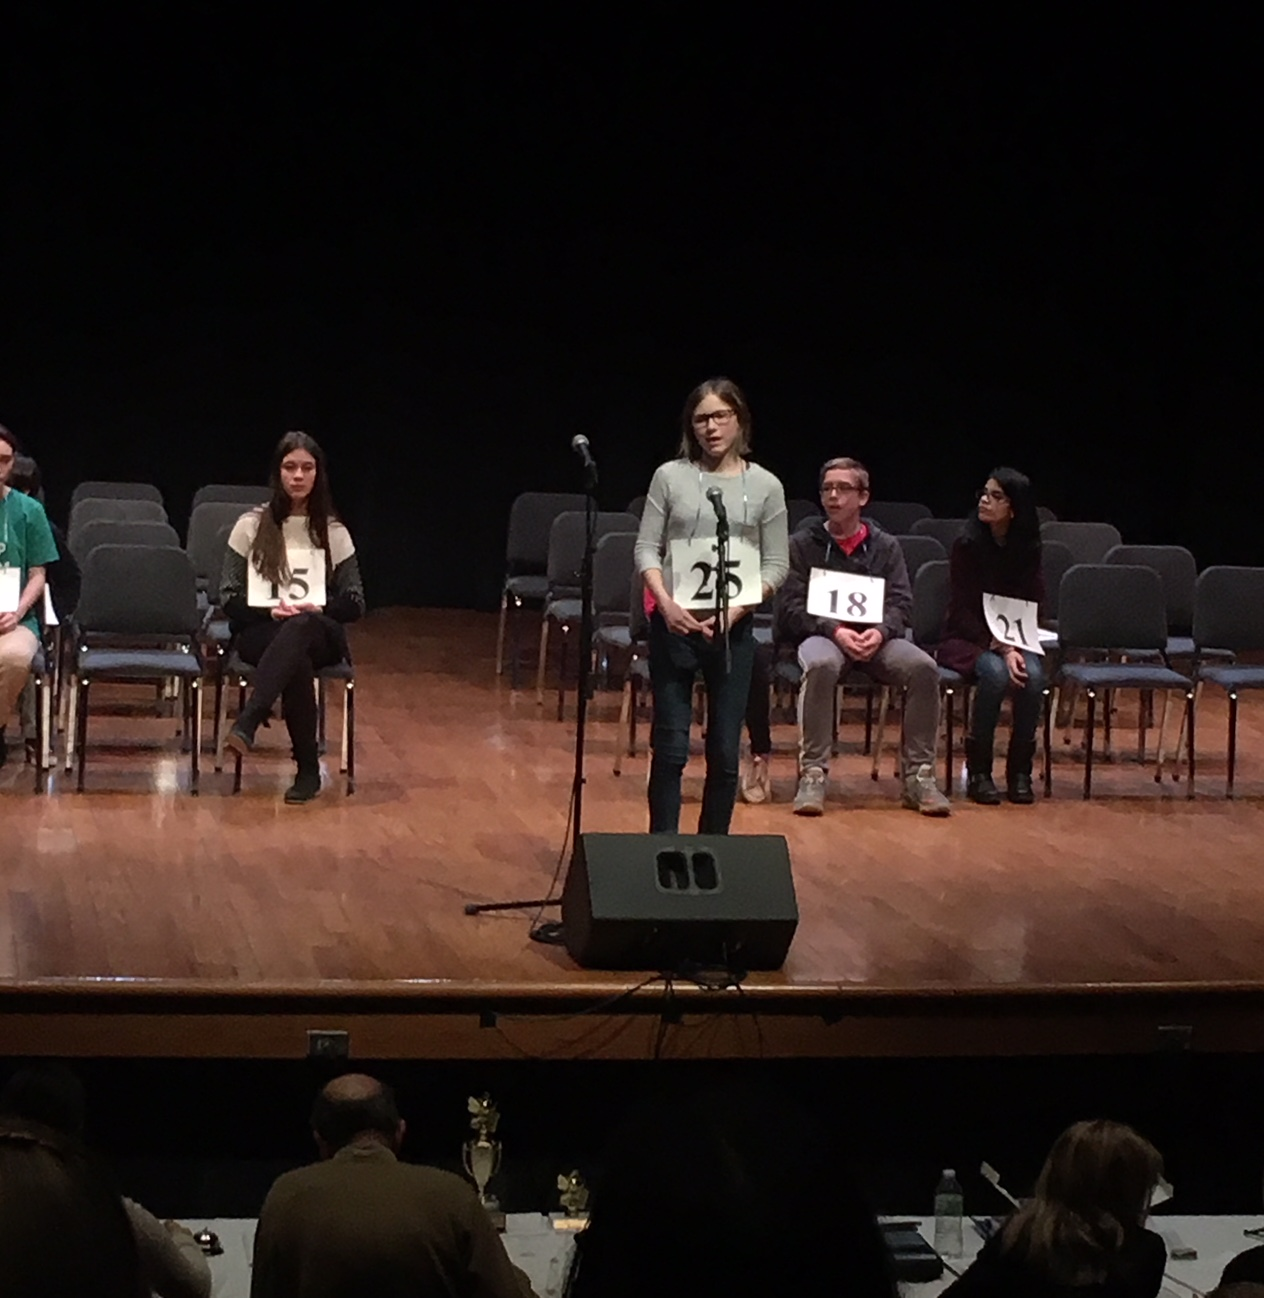 Sarah Kozlowski represented the RRCSD in the Cuyahoga County Scripps National Spelling Bee